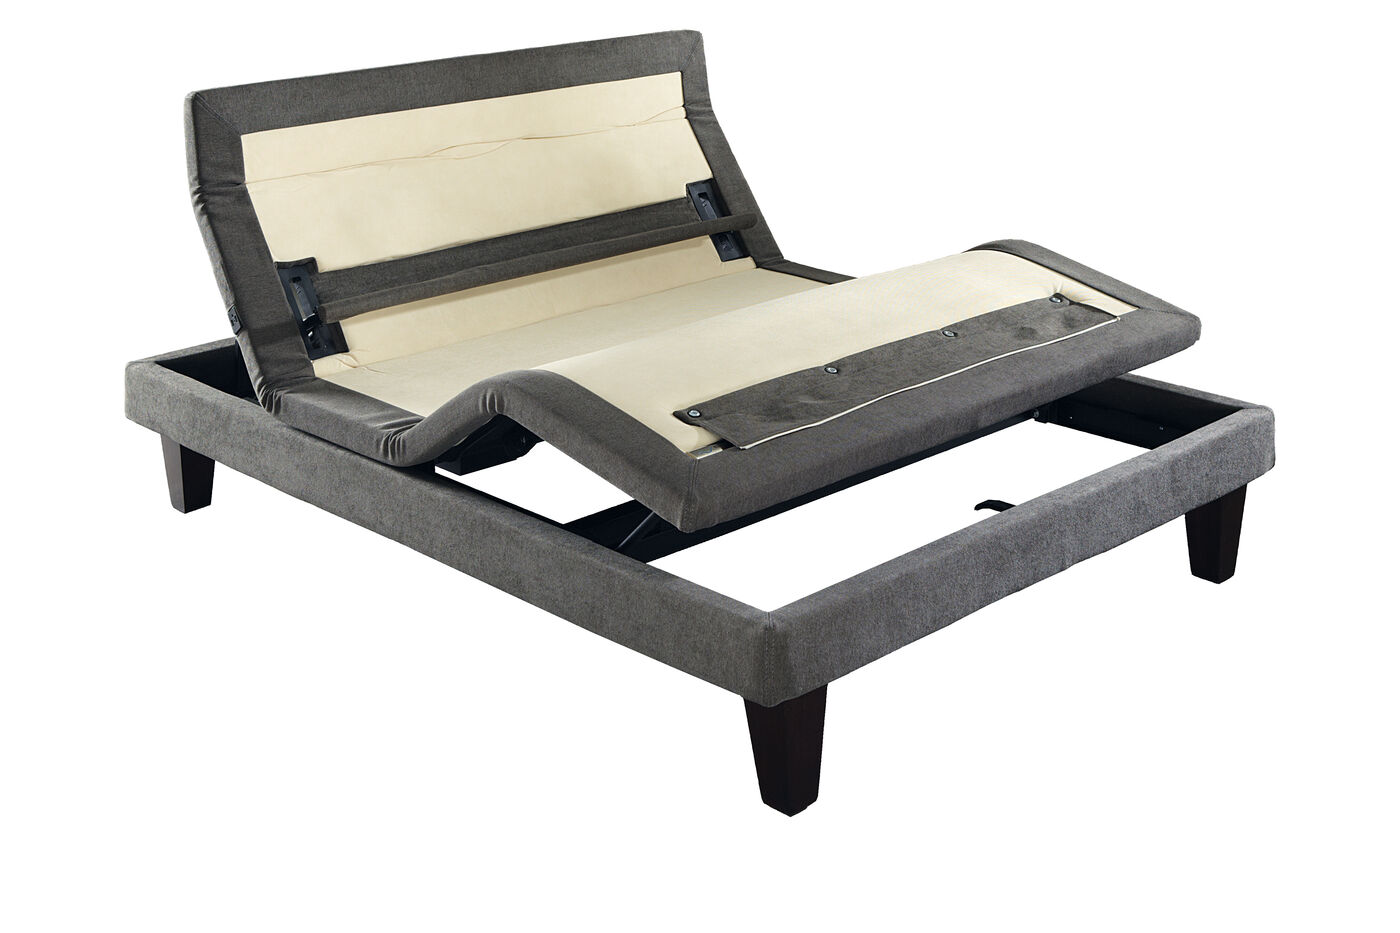 Adjustable Bed Base Full : Serta icomfort motion custom adjustable base mathis